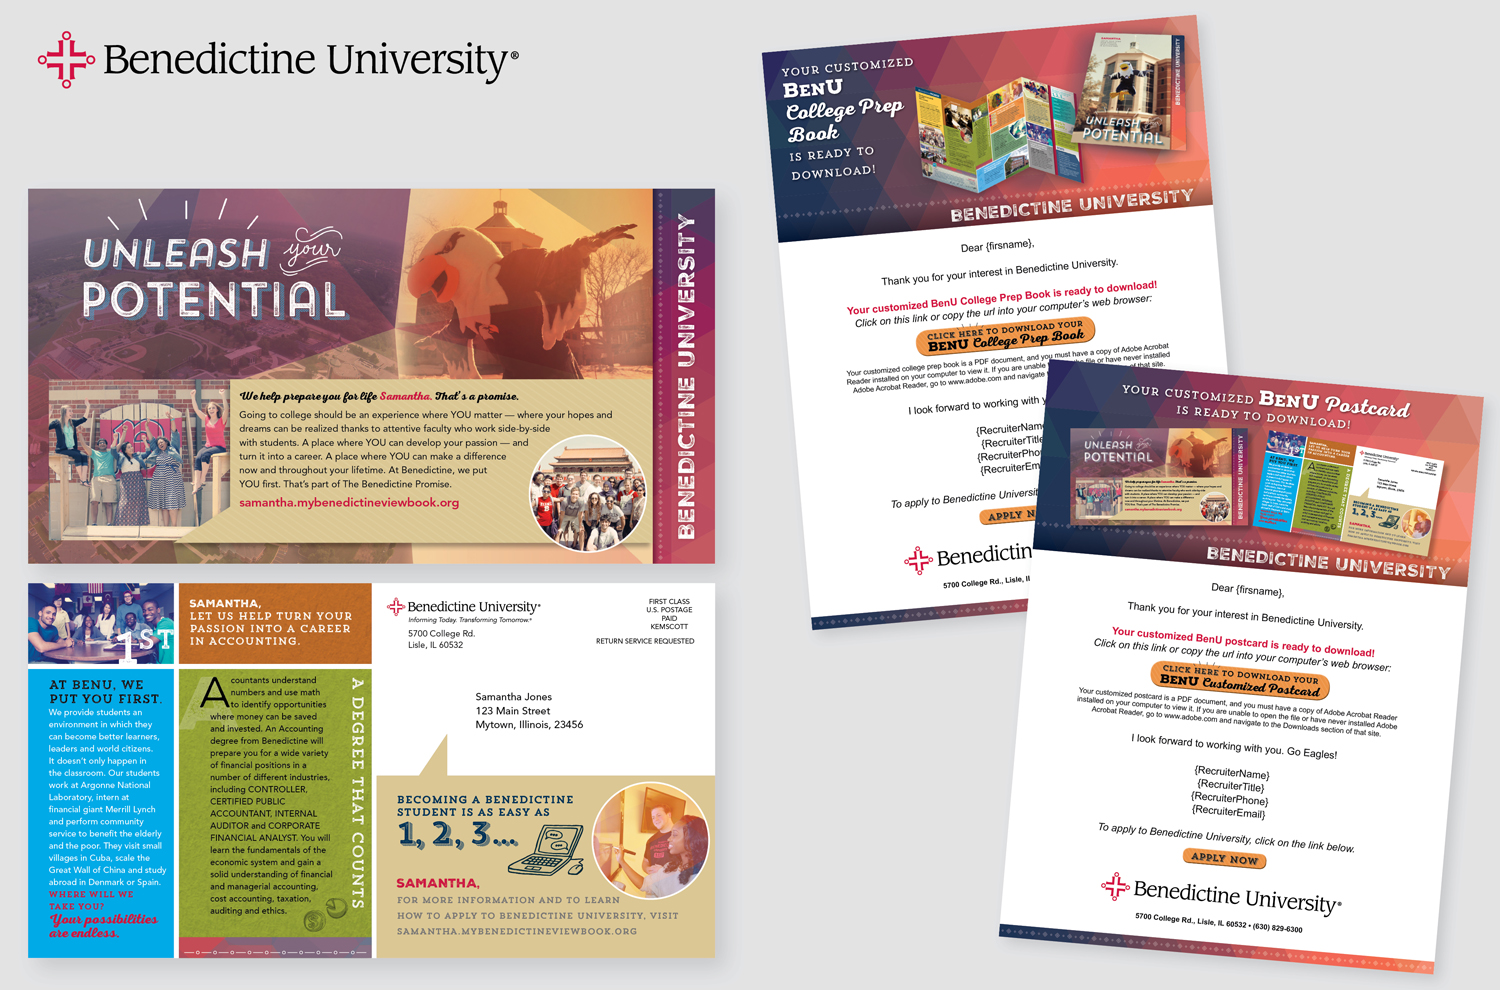 VARIABLE POSTCARD AND ELECTRONIC COMMUNICATION FOR BENEDICTINE UNIVERSITY